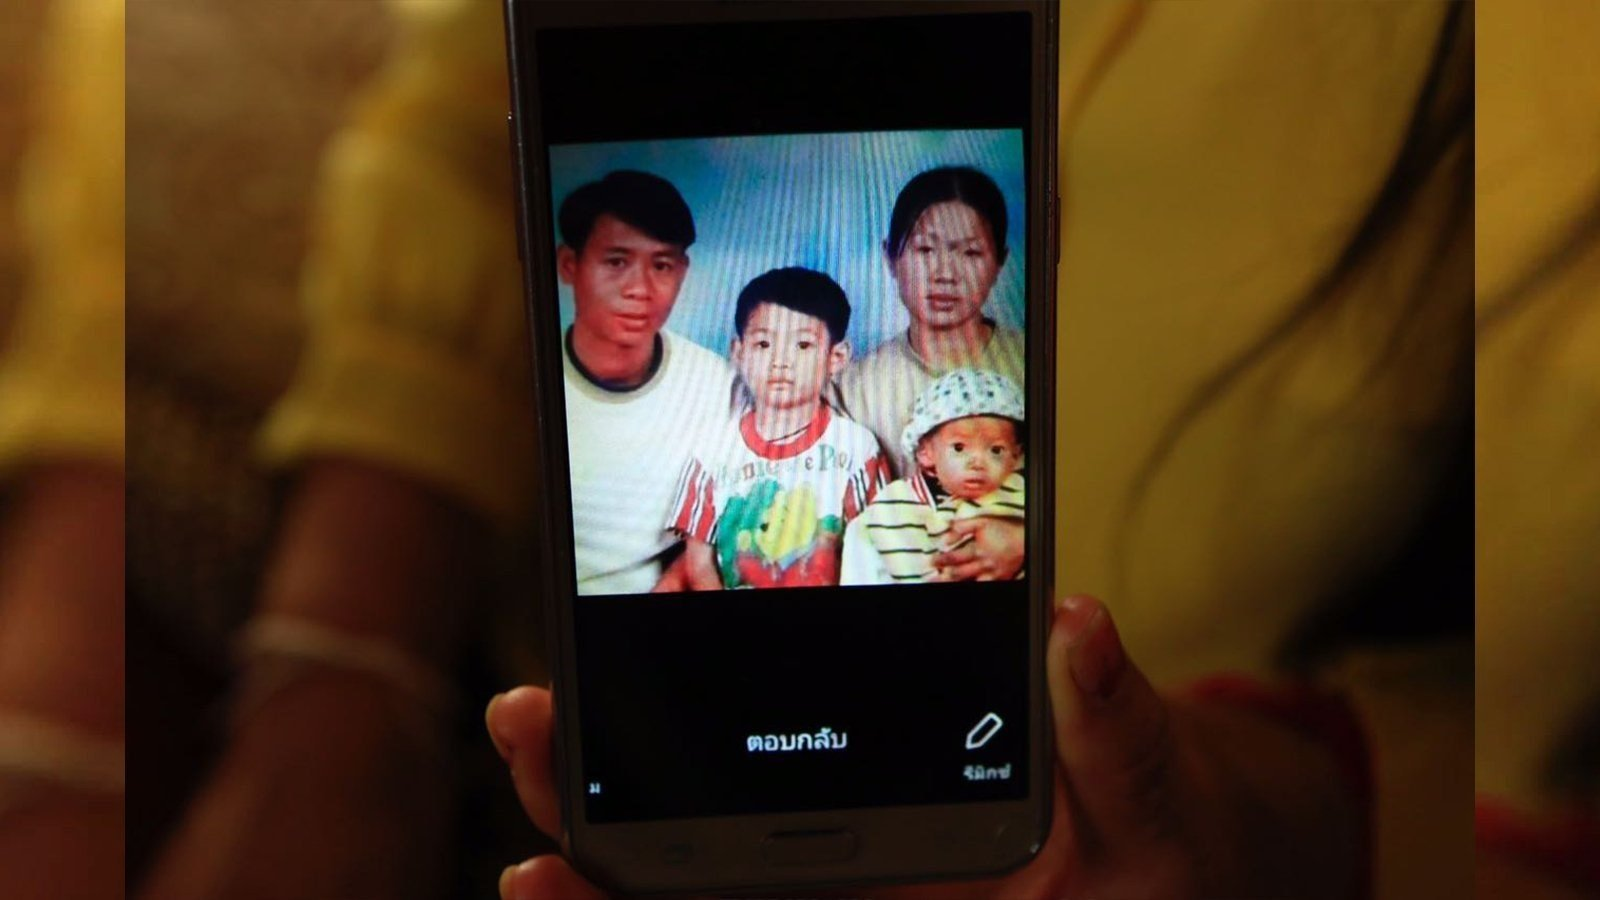 Soccer coach Ekkapol Ake Chantawong, seen here as a boy in the center of this photo with his late parents and younger brother.